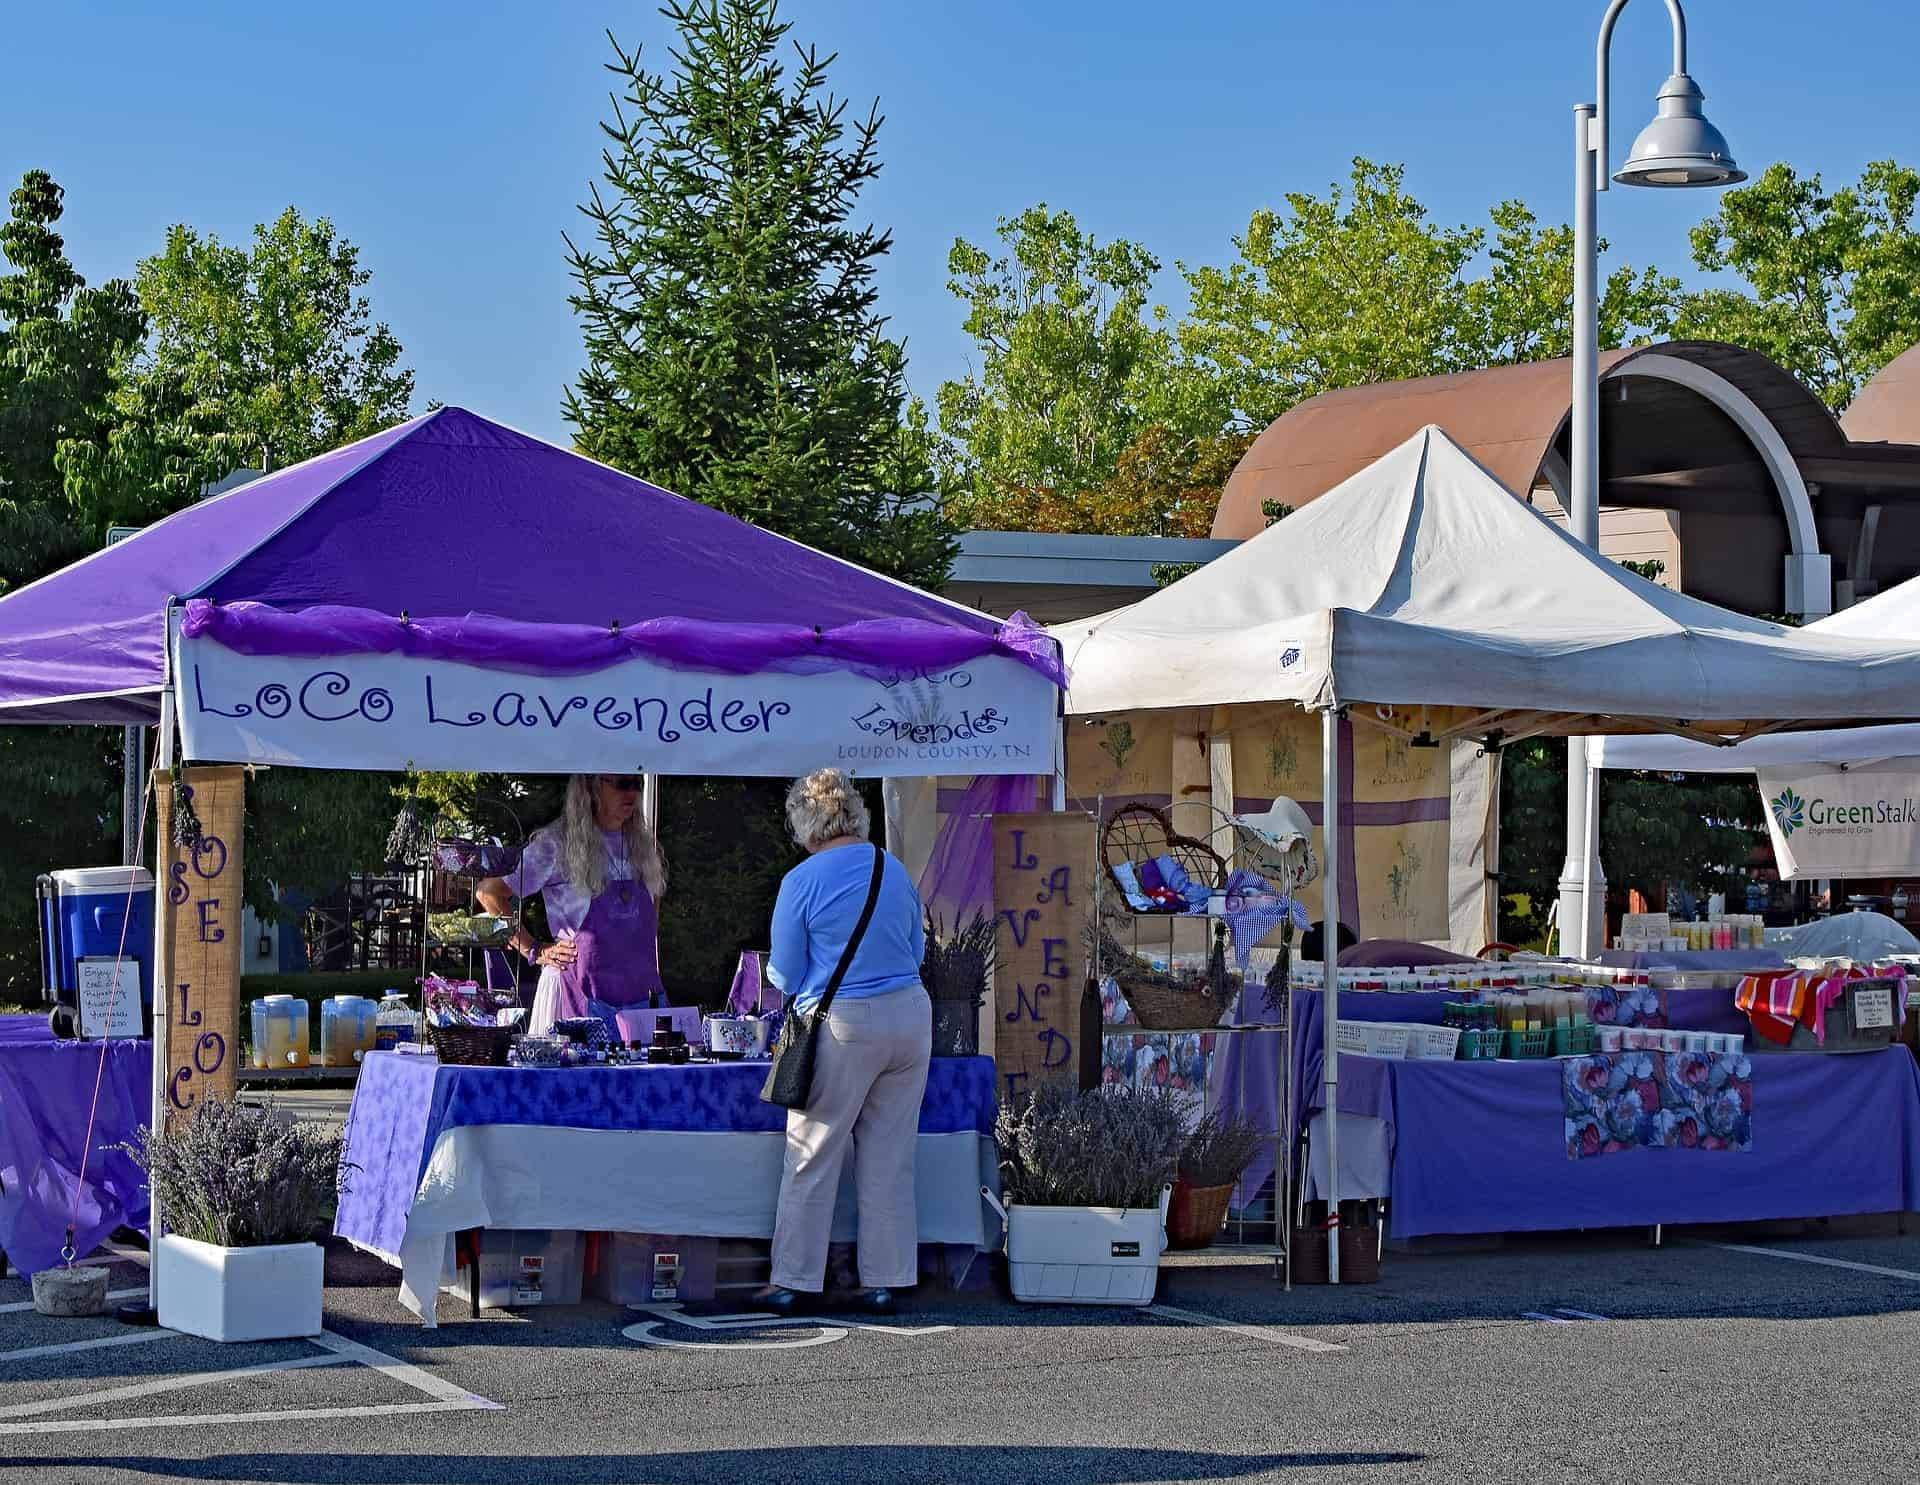 Lavender market, Valensole Plateau in Provence, lavender fields France, Valensole France, lavender fields france season